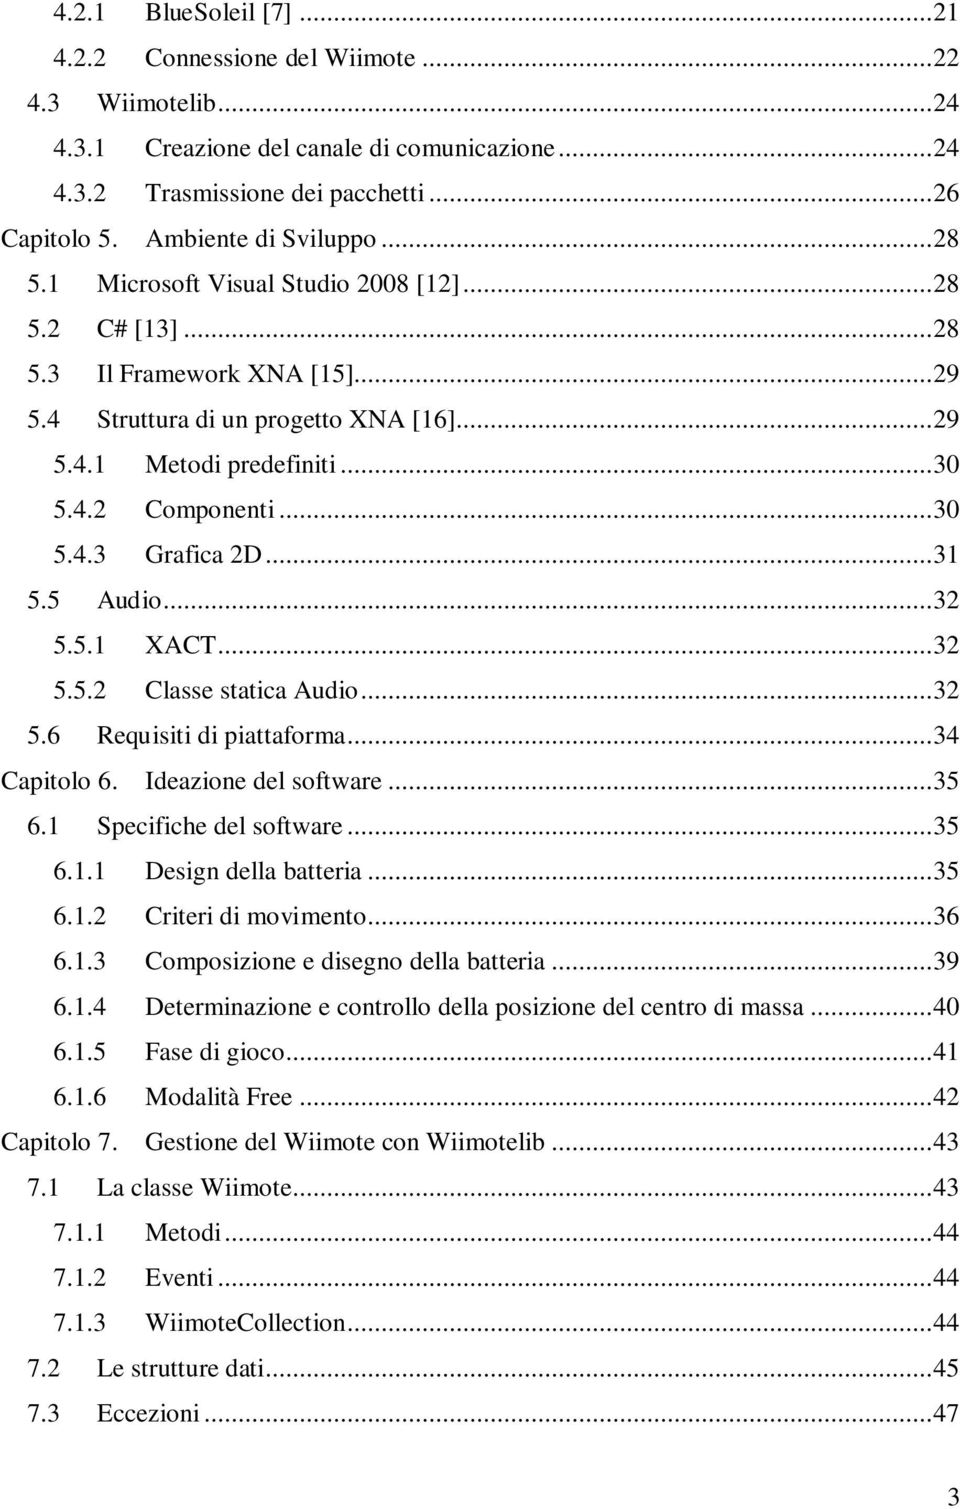 .. 30 5.4.3 Grafica 2D... 31 5.5 Audio... 32 5.5.1 XACT... 32 5.5.2 Classe statica Audio... 32 5.6 Requisiti di piattaforma... 34 Capitolo 6. Ideazione del software... 35 6.1 Specifiche del software.